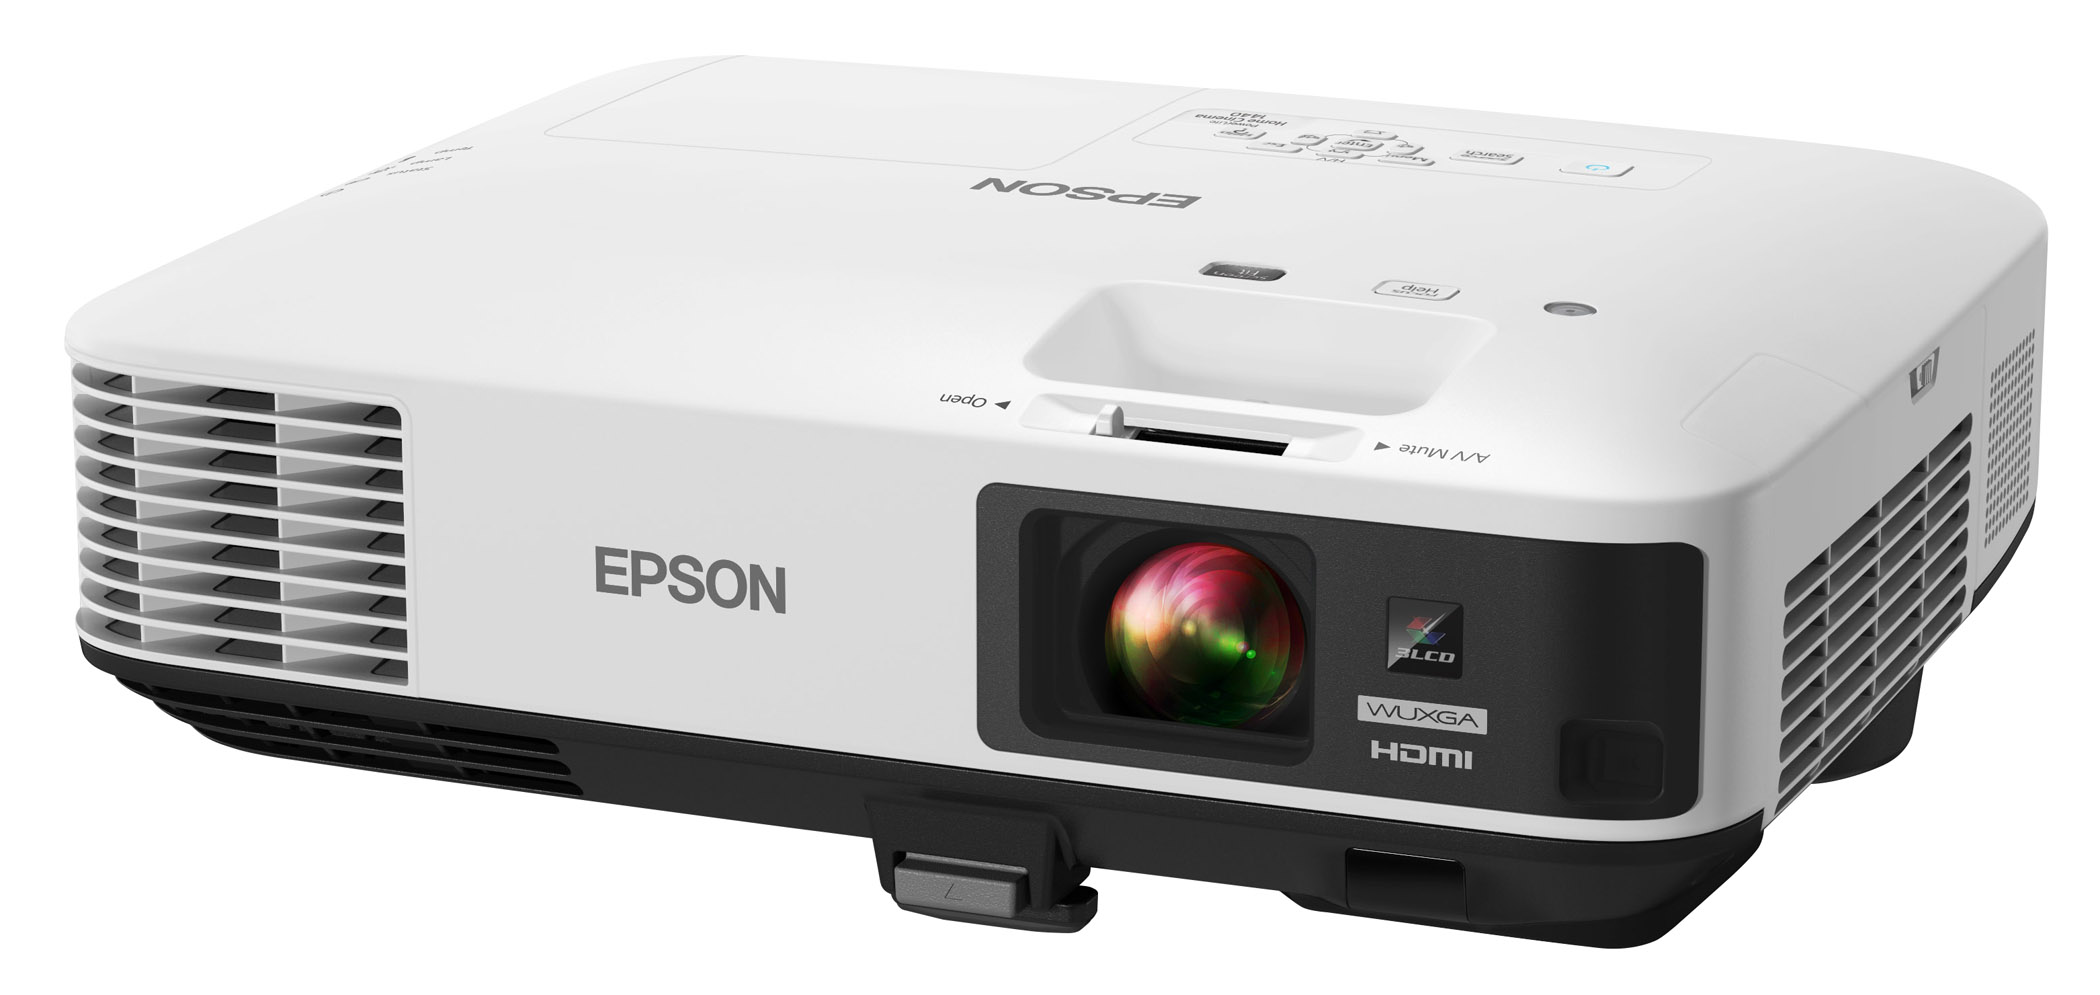 """Change The Way You """"TV"""" with the Epson Ultra Bright Home Theater Projector from BestBuy"""